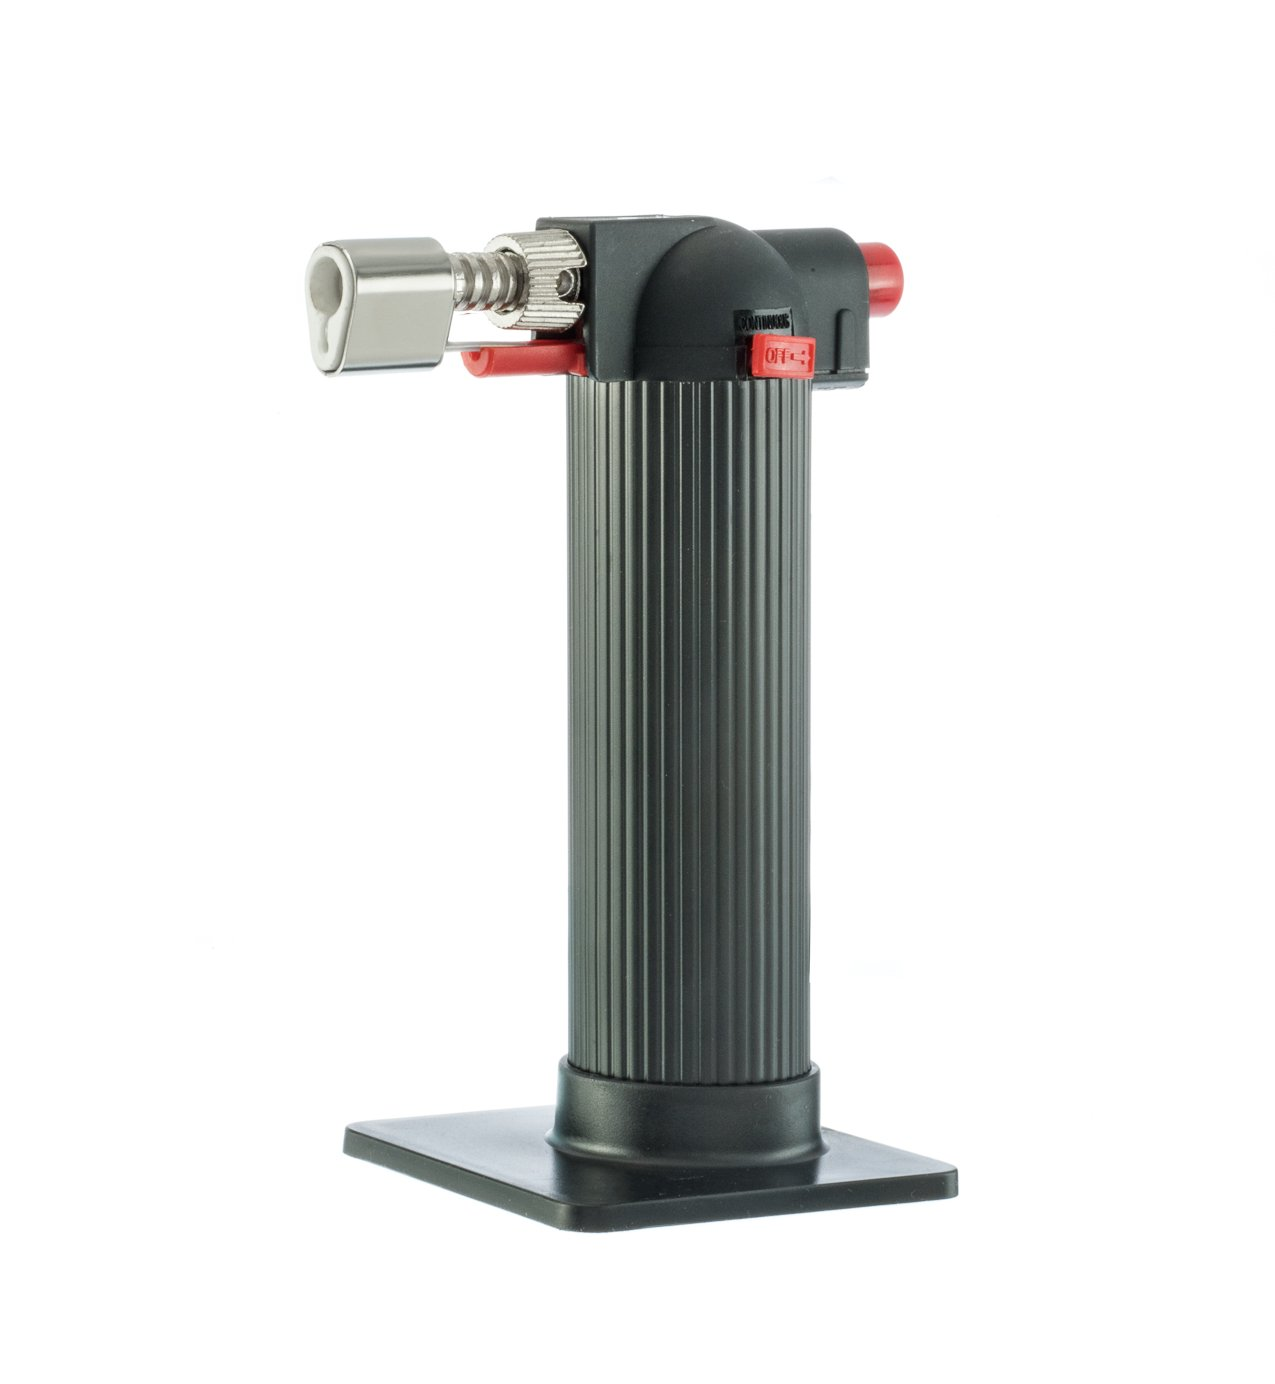 SE MT7370M Butane Micro Torch with Piezo Electronic Automatic Ignition System